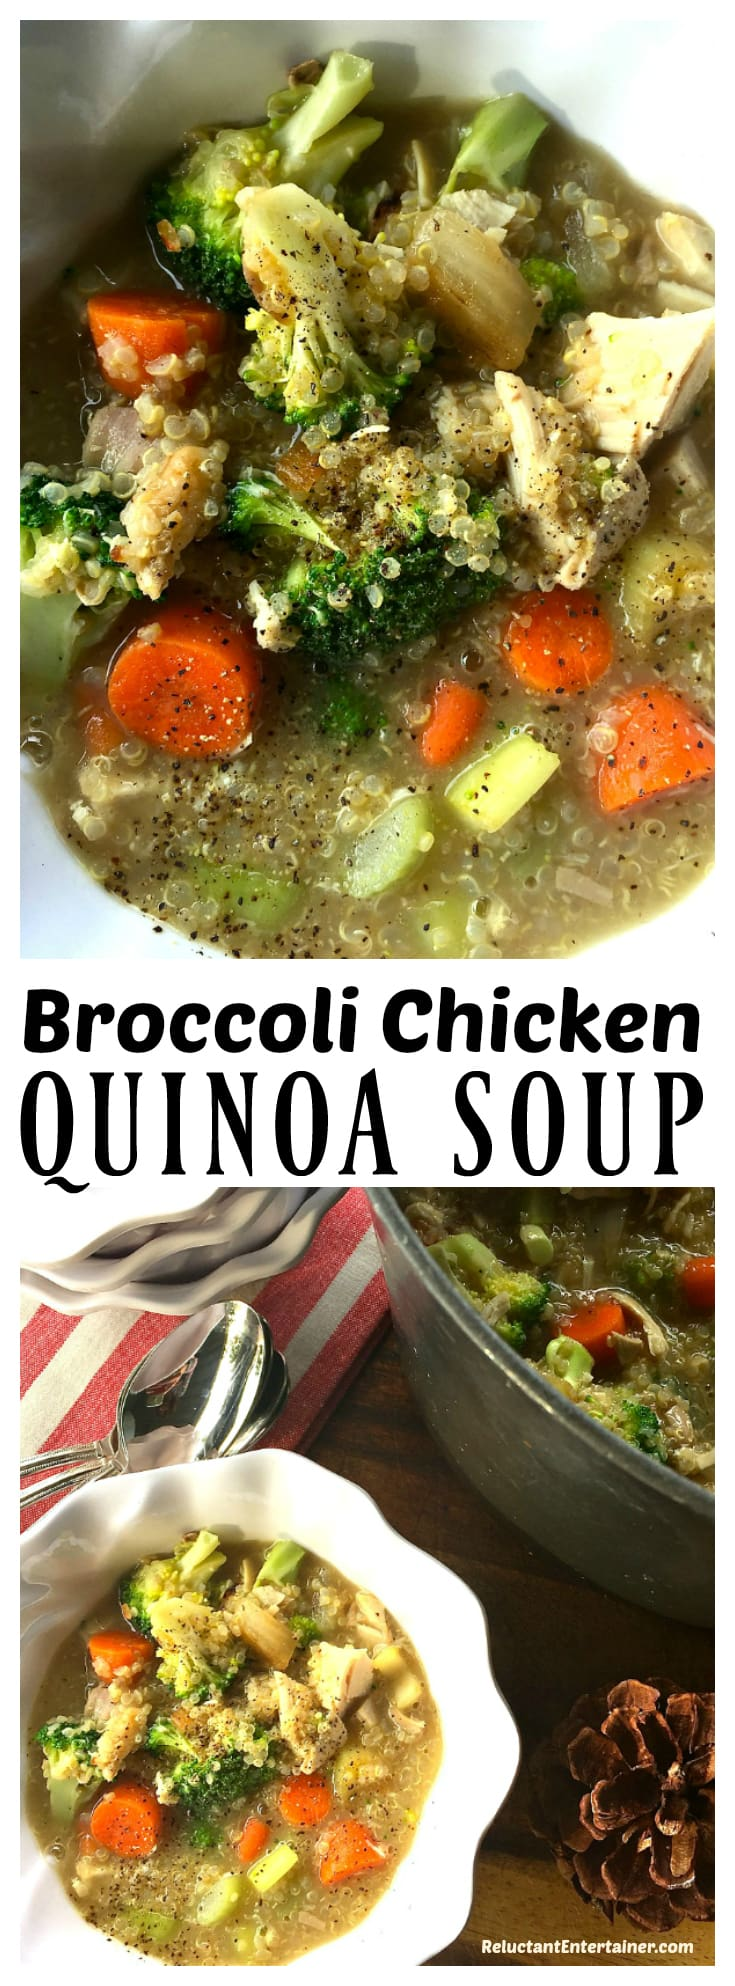 Broccoli Chicken Quinoa Soup at ReluctantEntertainer.com